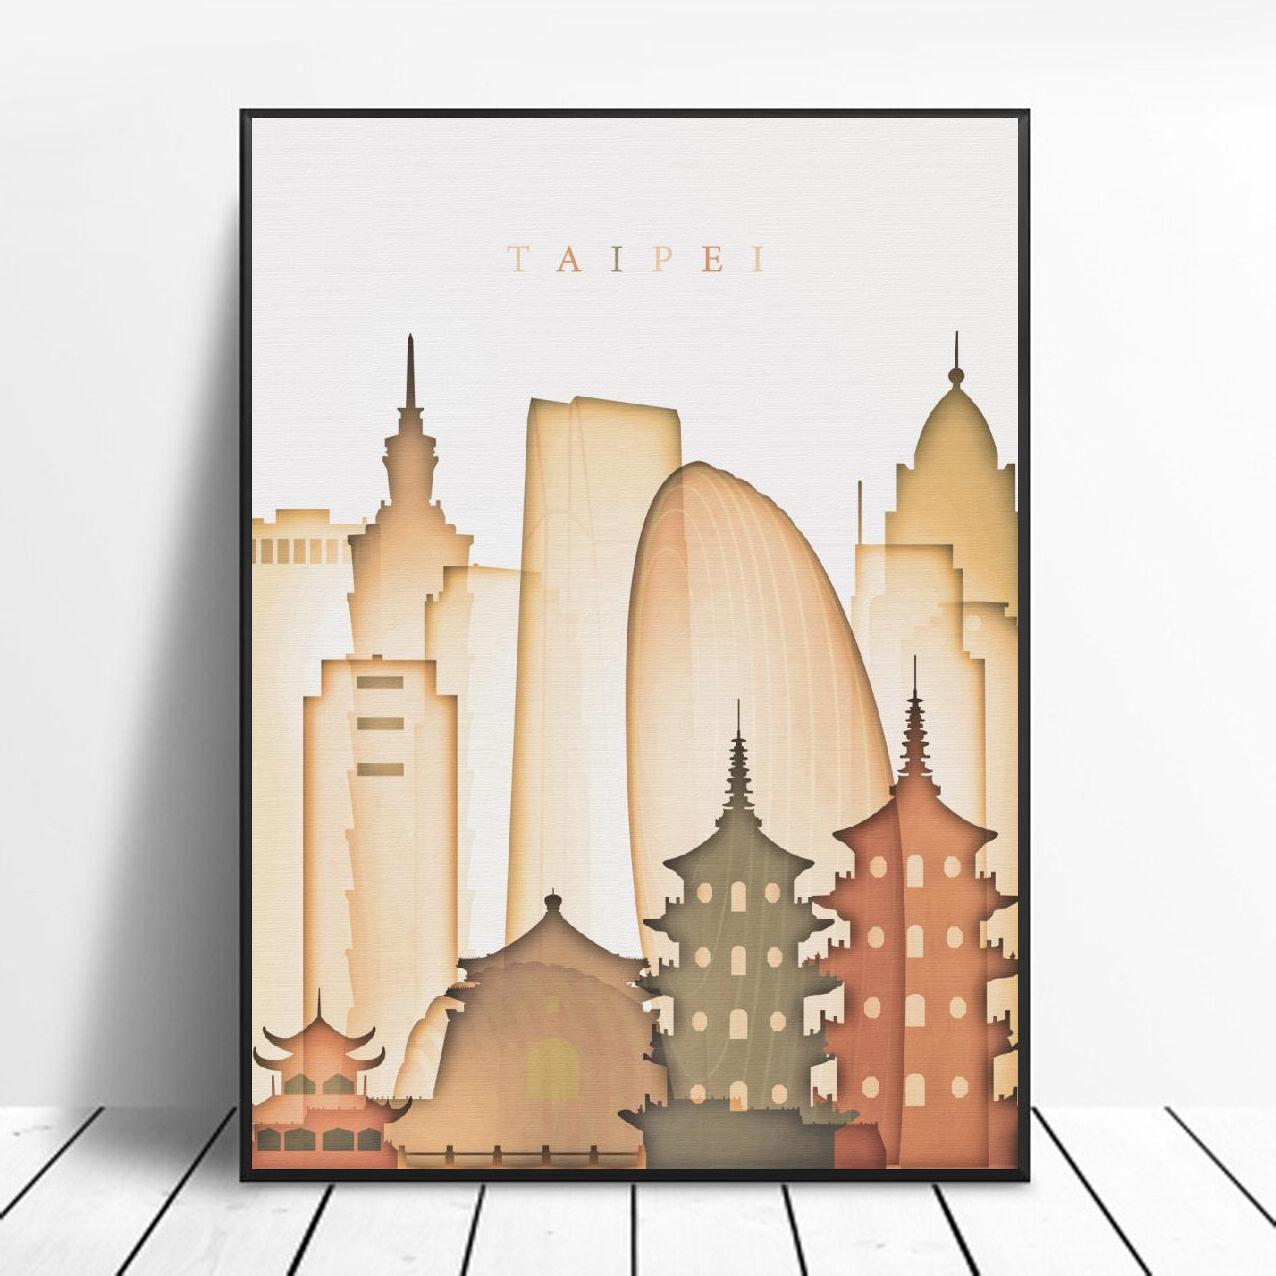 Taipei Taiwan Skyline Canvas Print Wall Art Poster Picture Modern Bedroom Living Room Decoration No Frame(China)